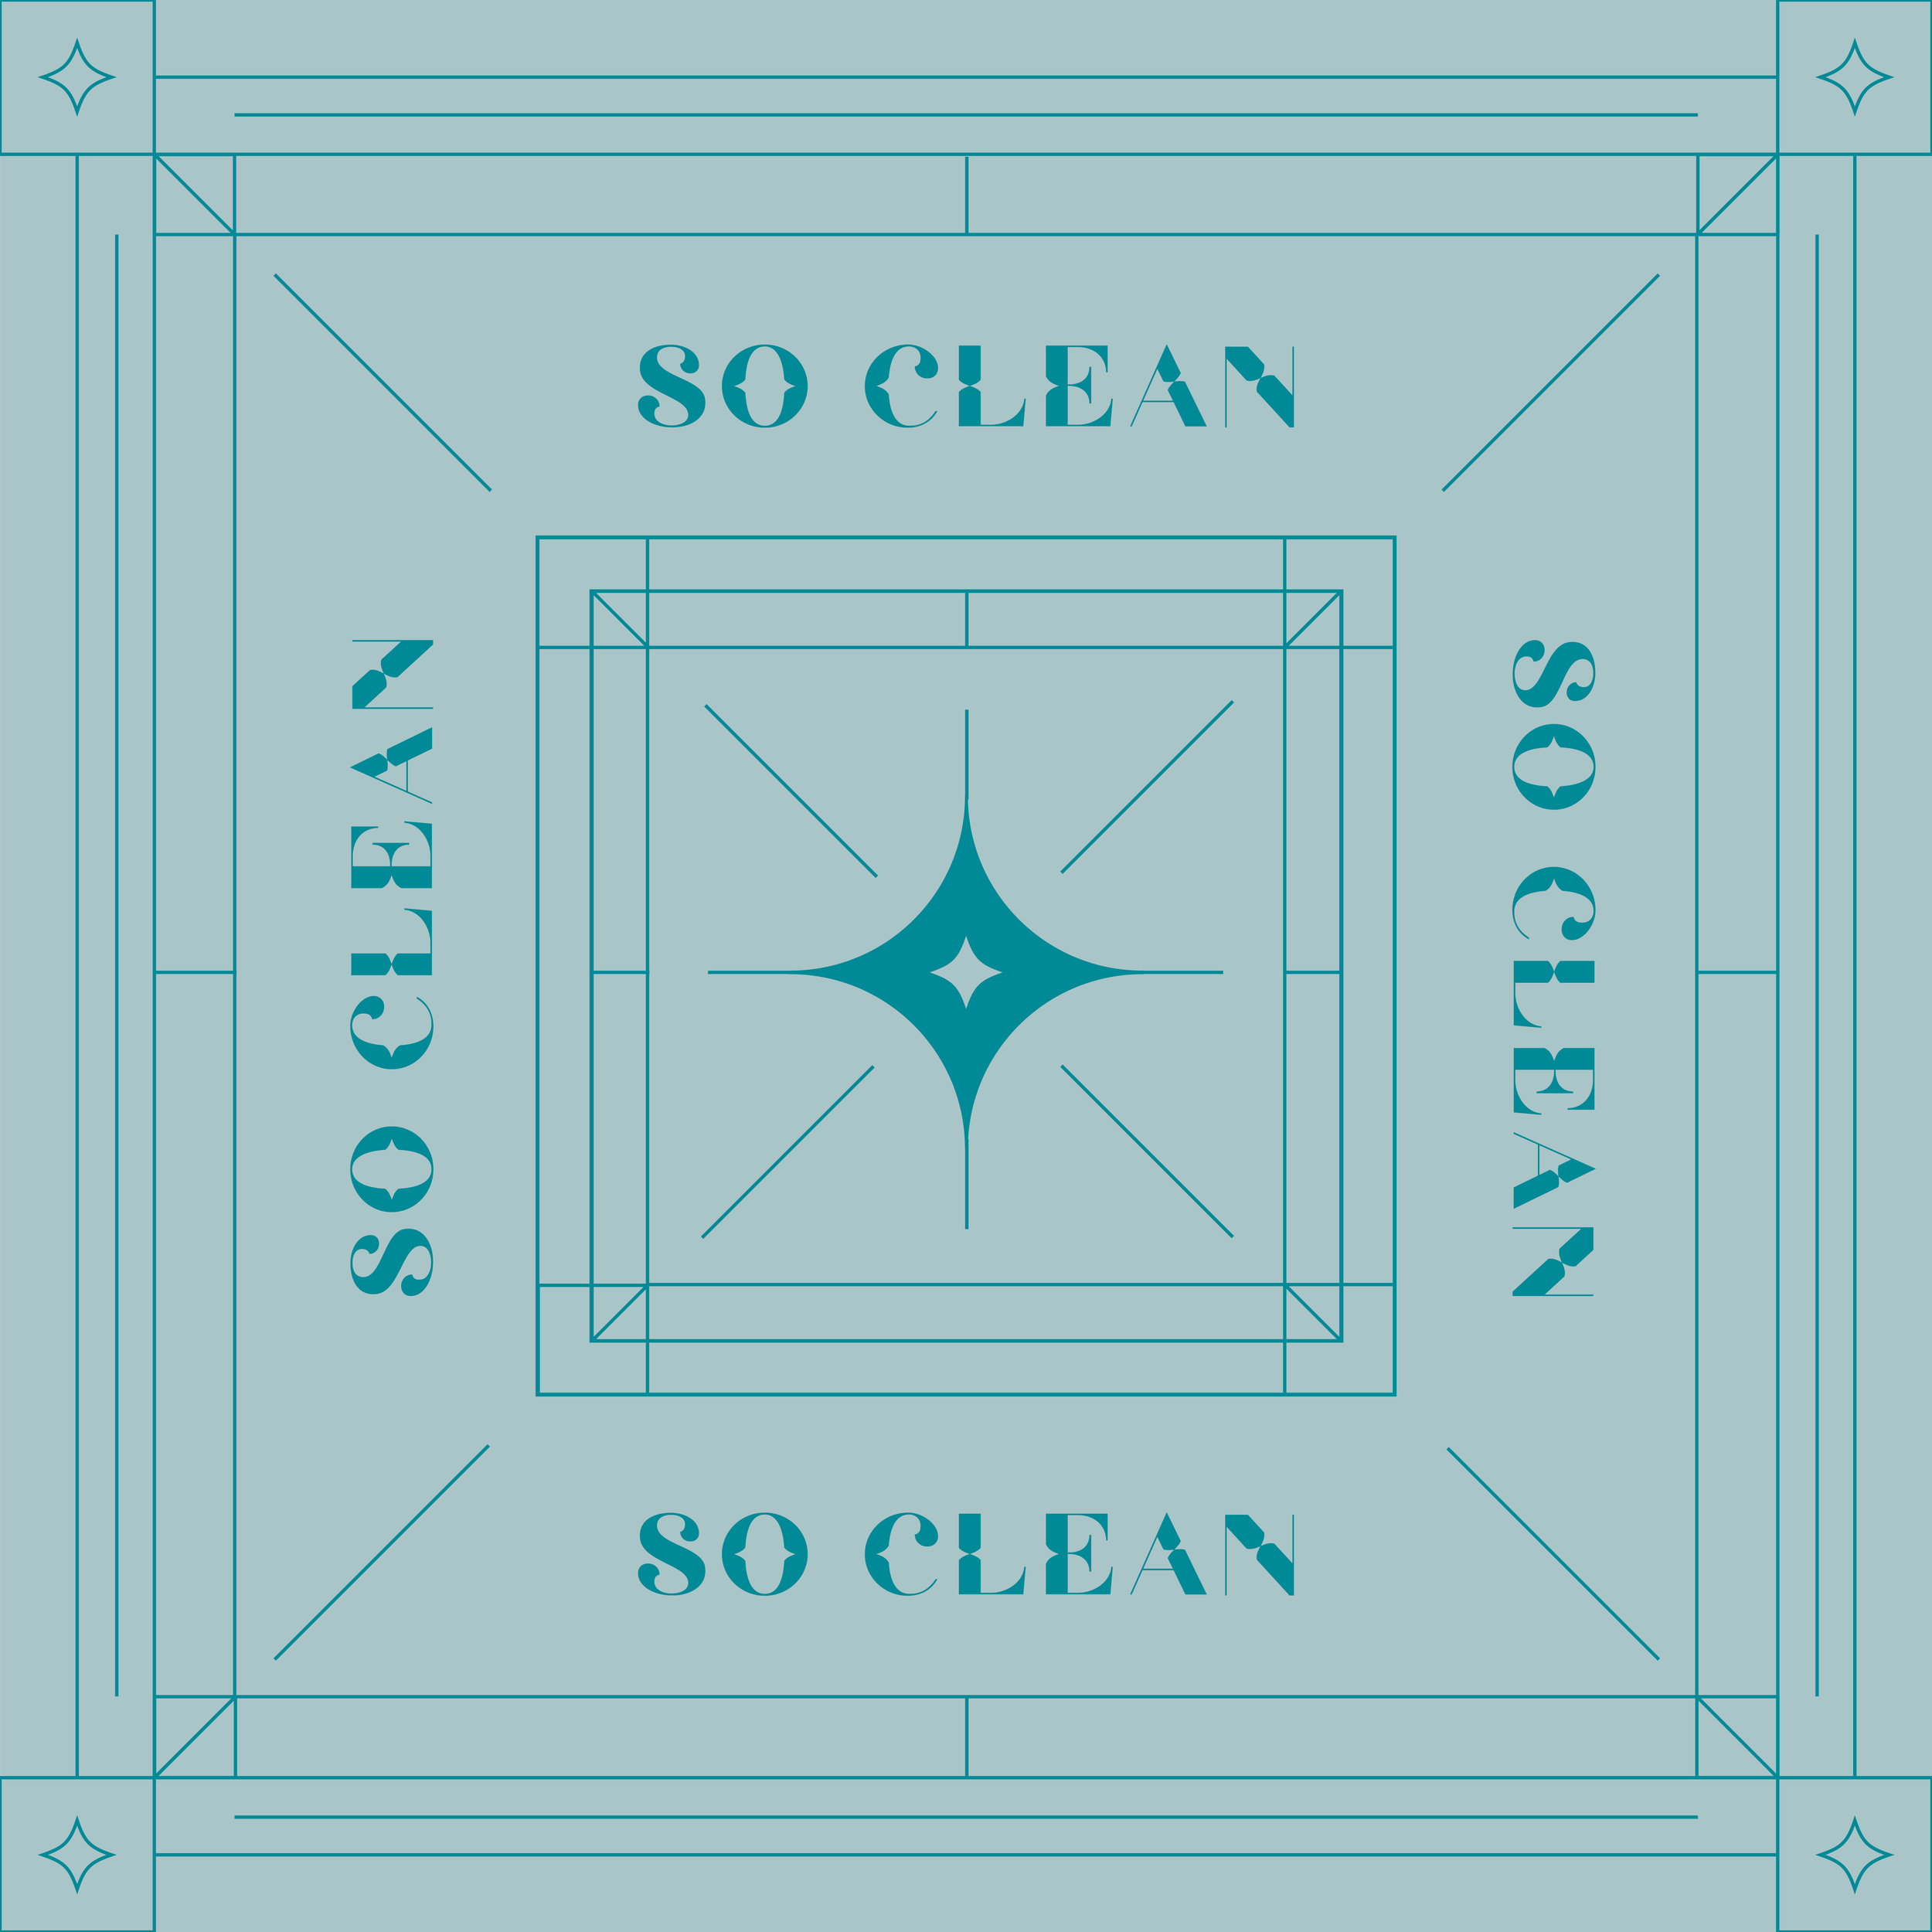 Clarity-Candle-Playlist-Cover-Design-03-So-Clean.jpg